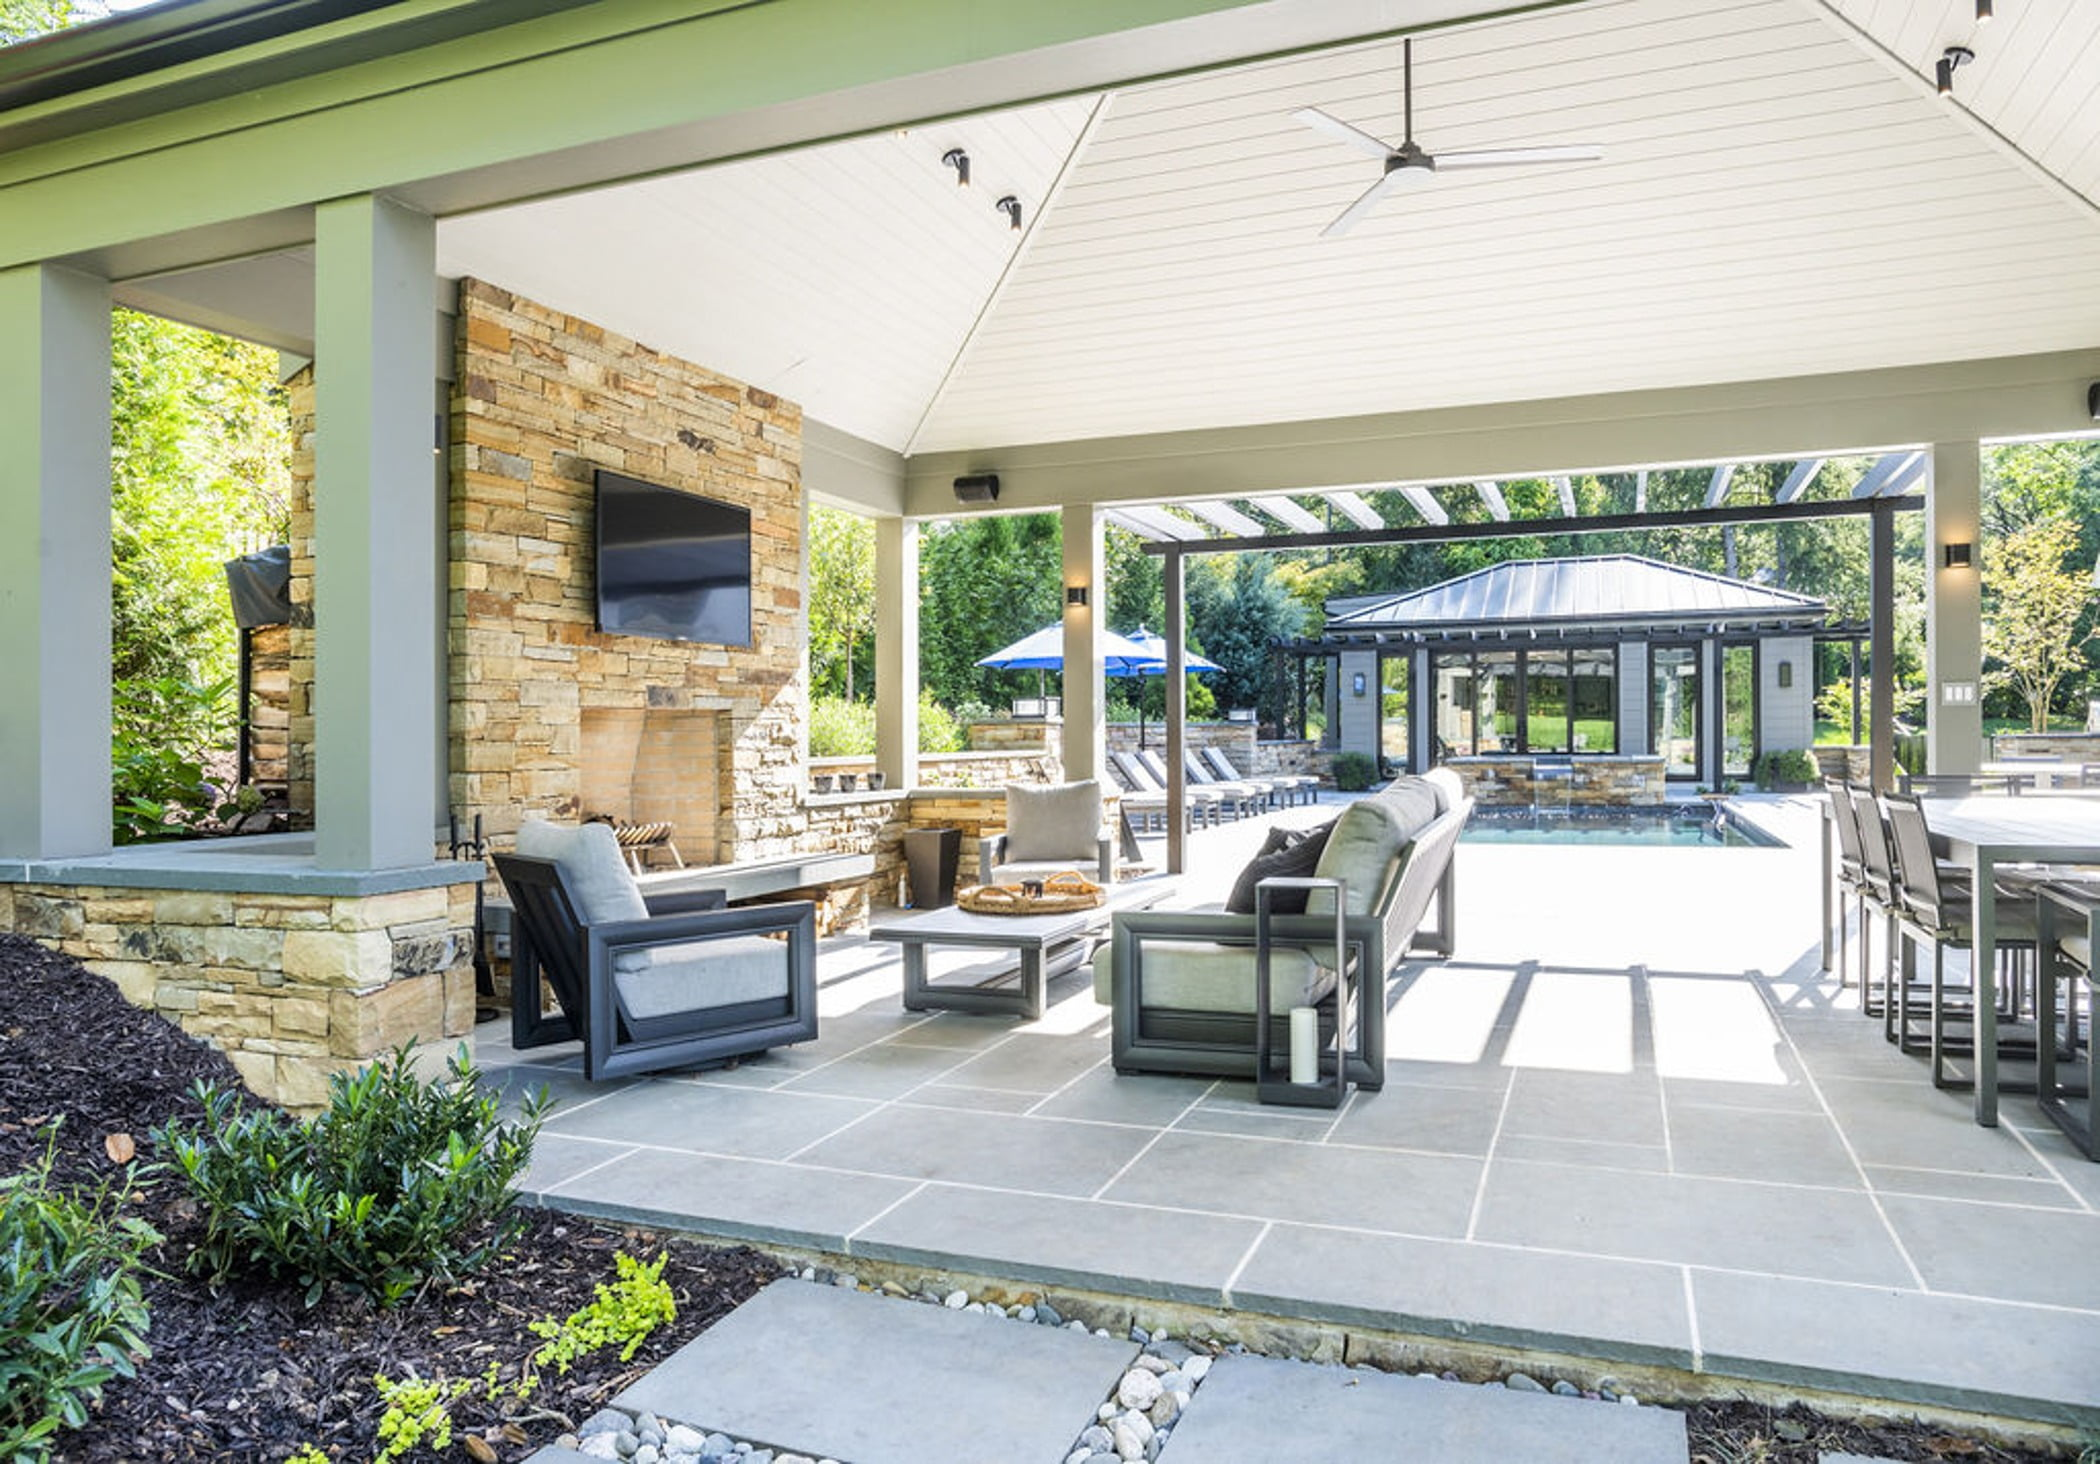 Transitional backyard patio bar and poolhouse with concrete pavers and cobblestone accented retaining walls and hot tub